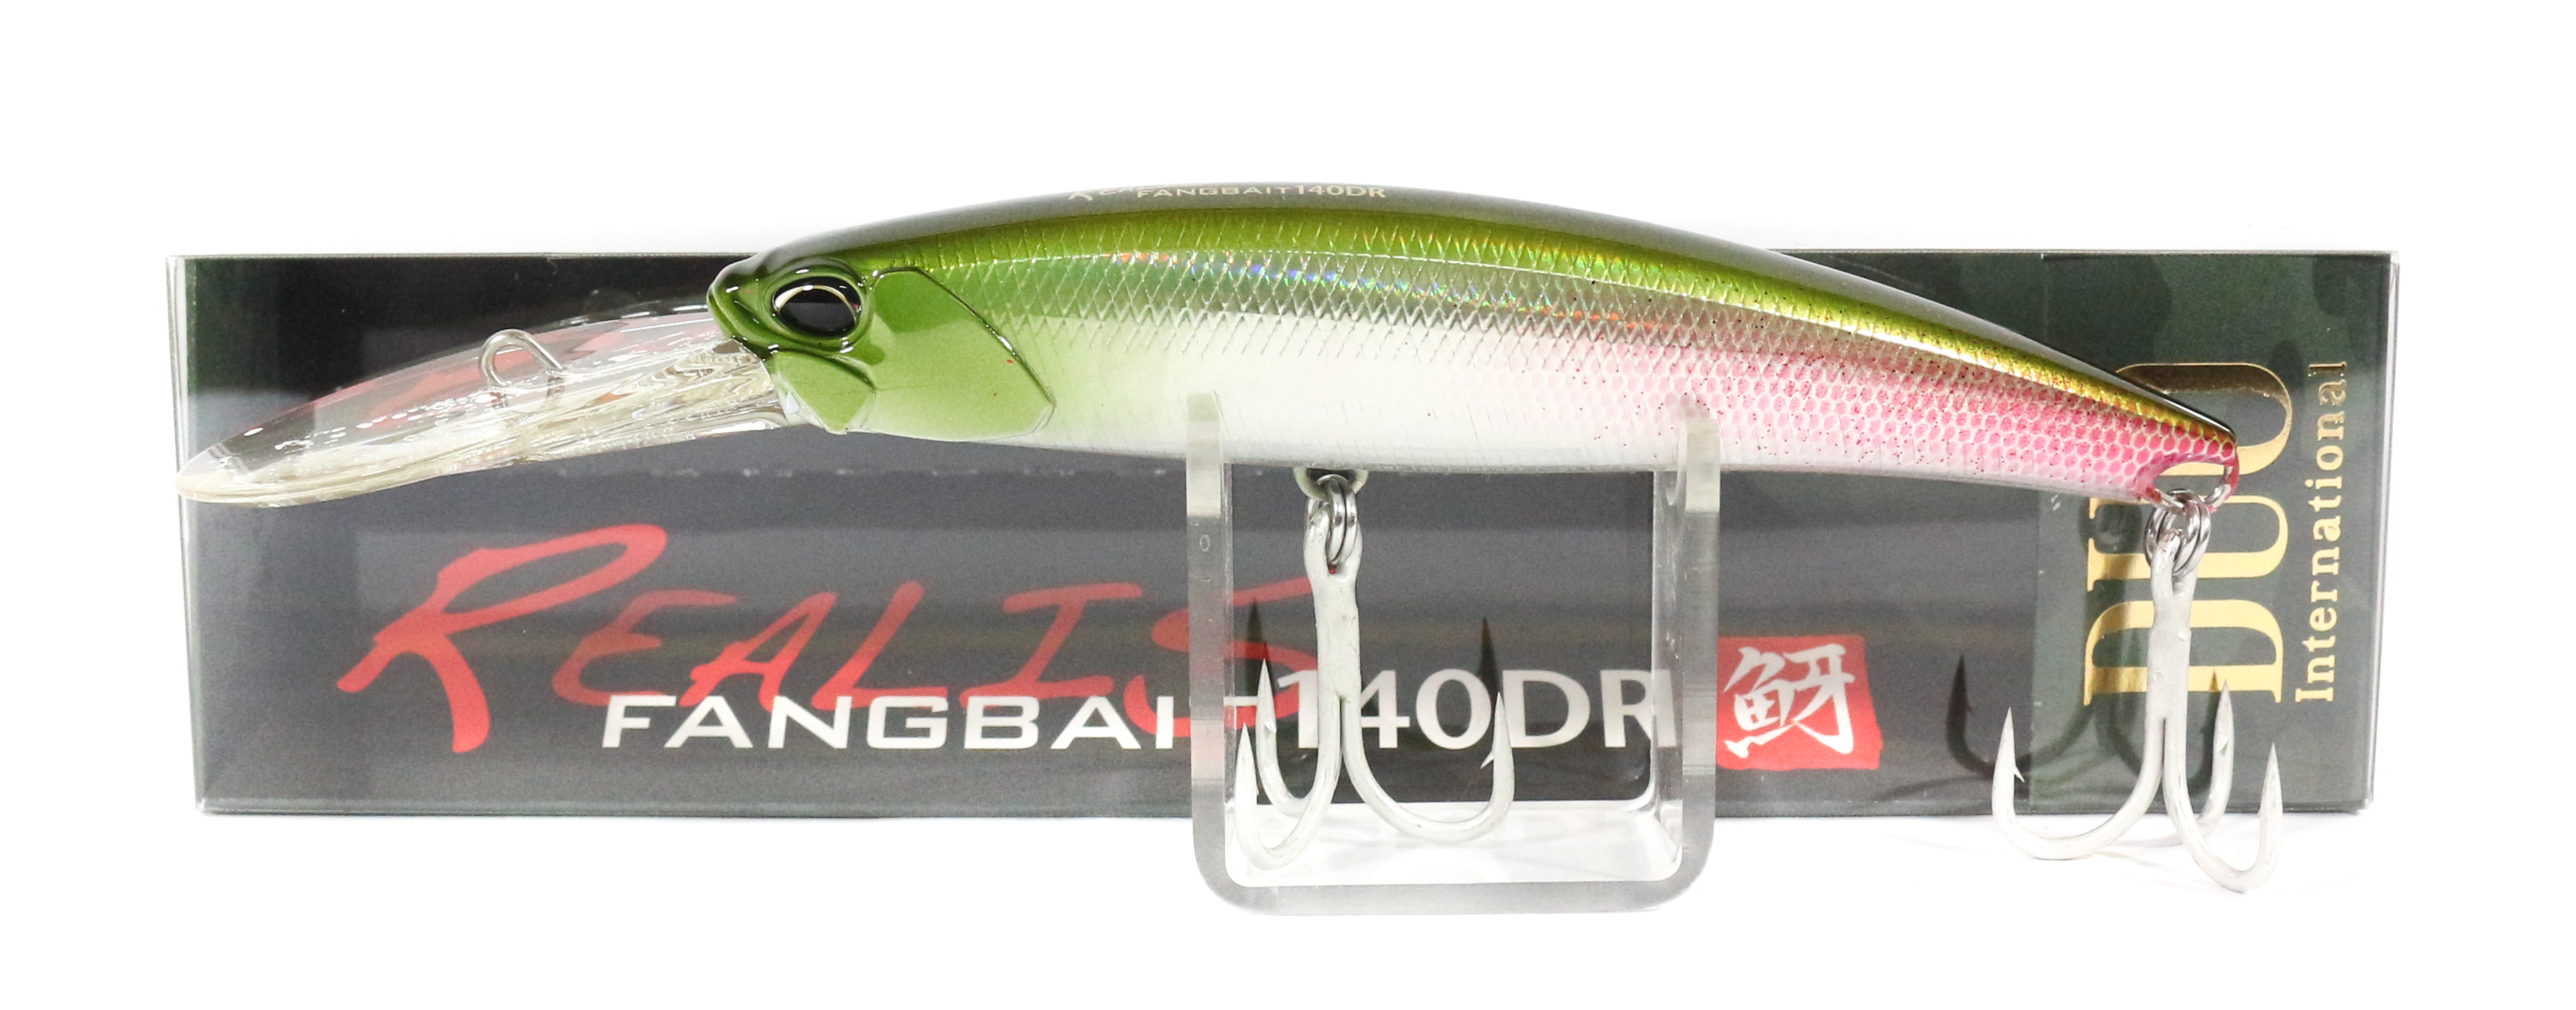 Sale Duo Realis Fangbait 140DR Floating Lure AFA3333 (3809)